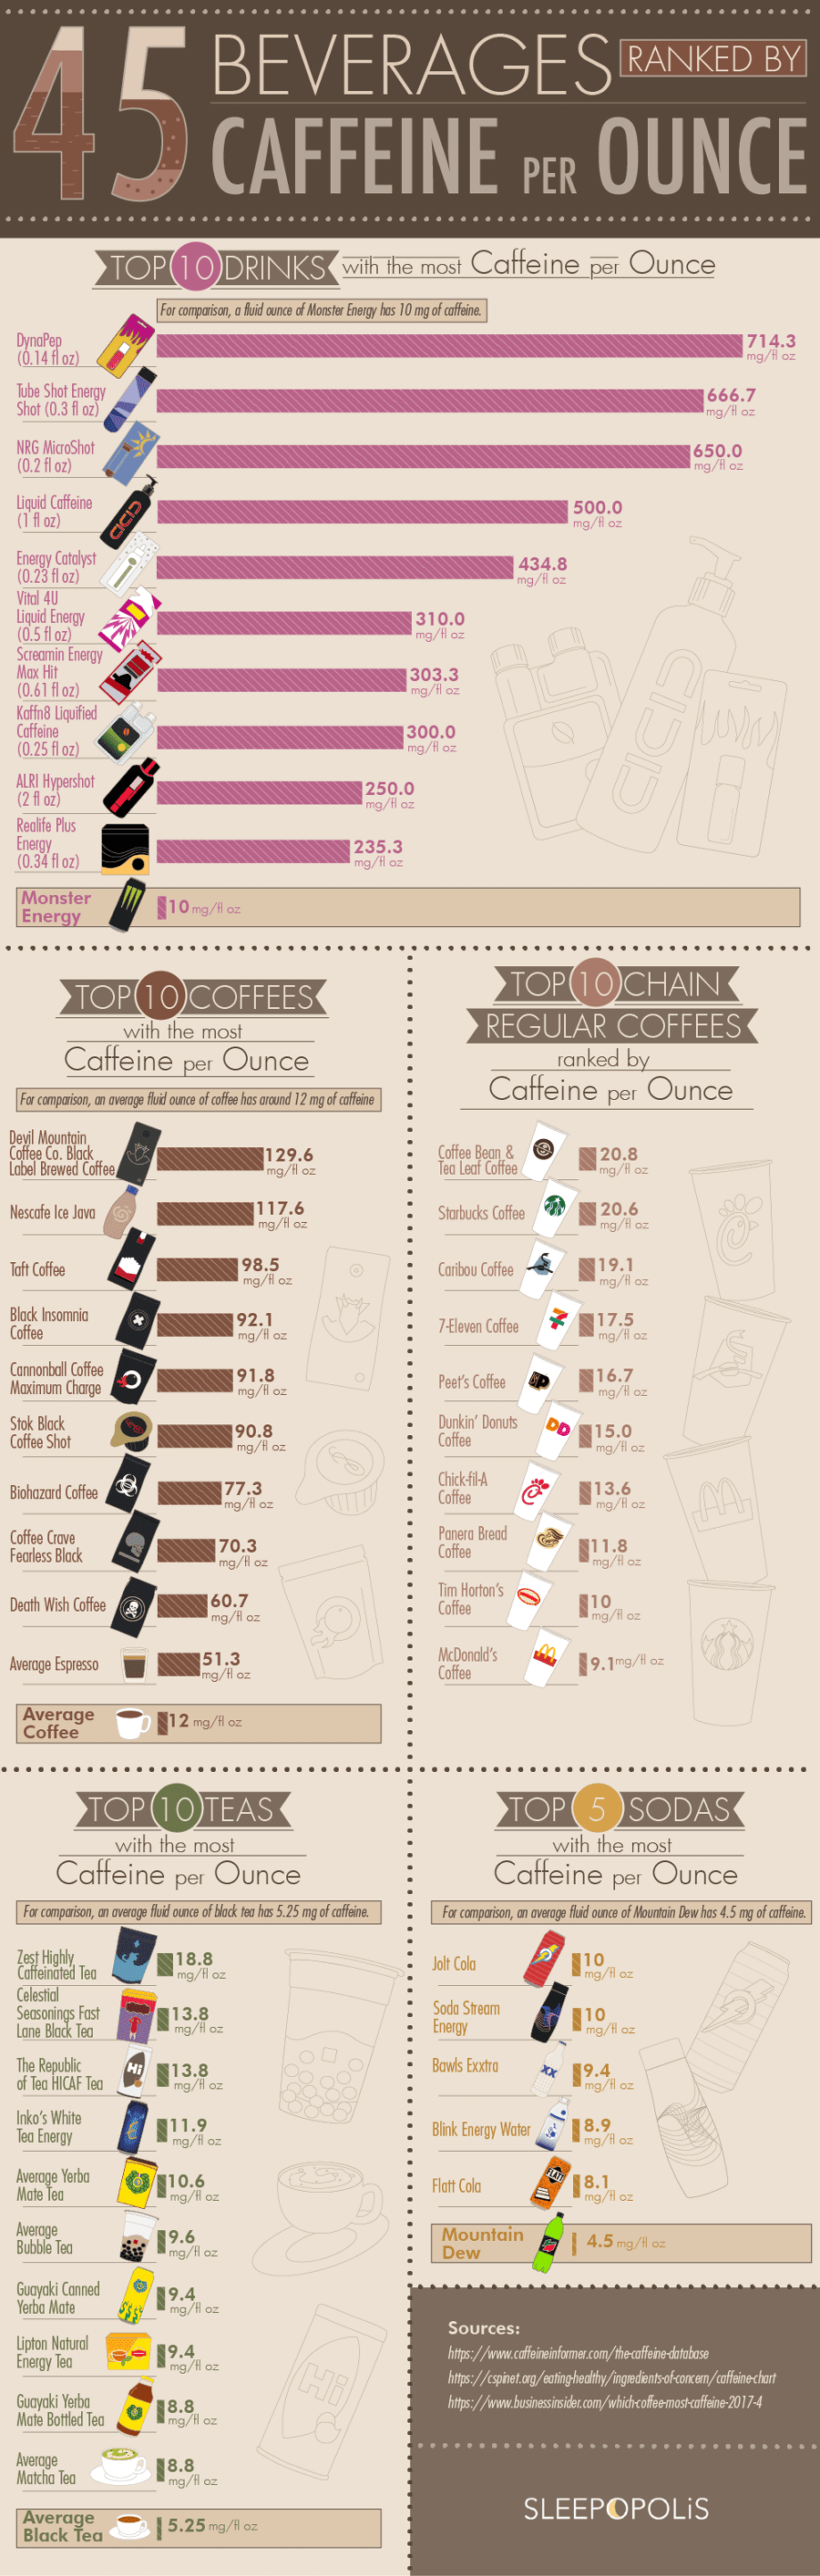 45 Beverages Ranked by Caffeine Per Ounce #infographic